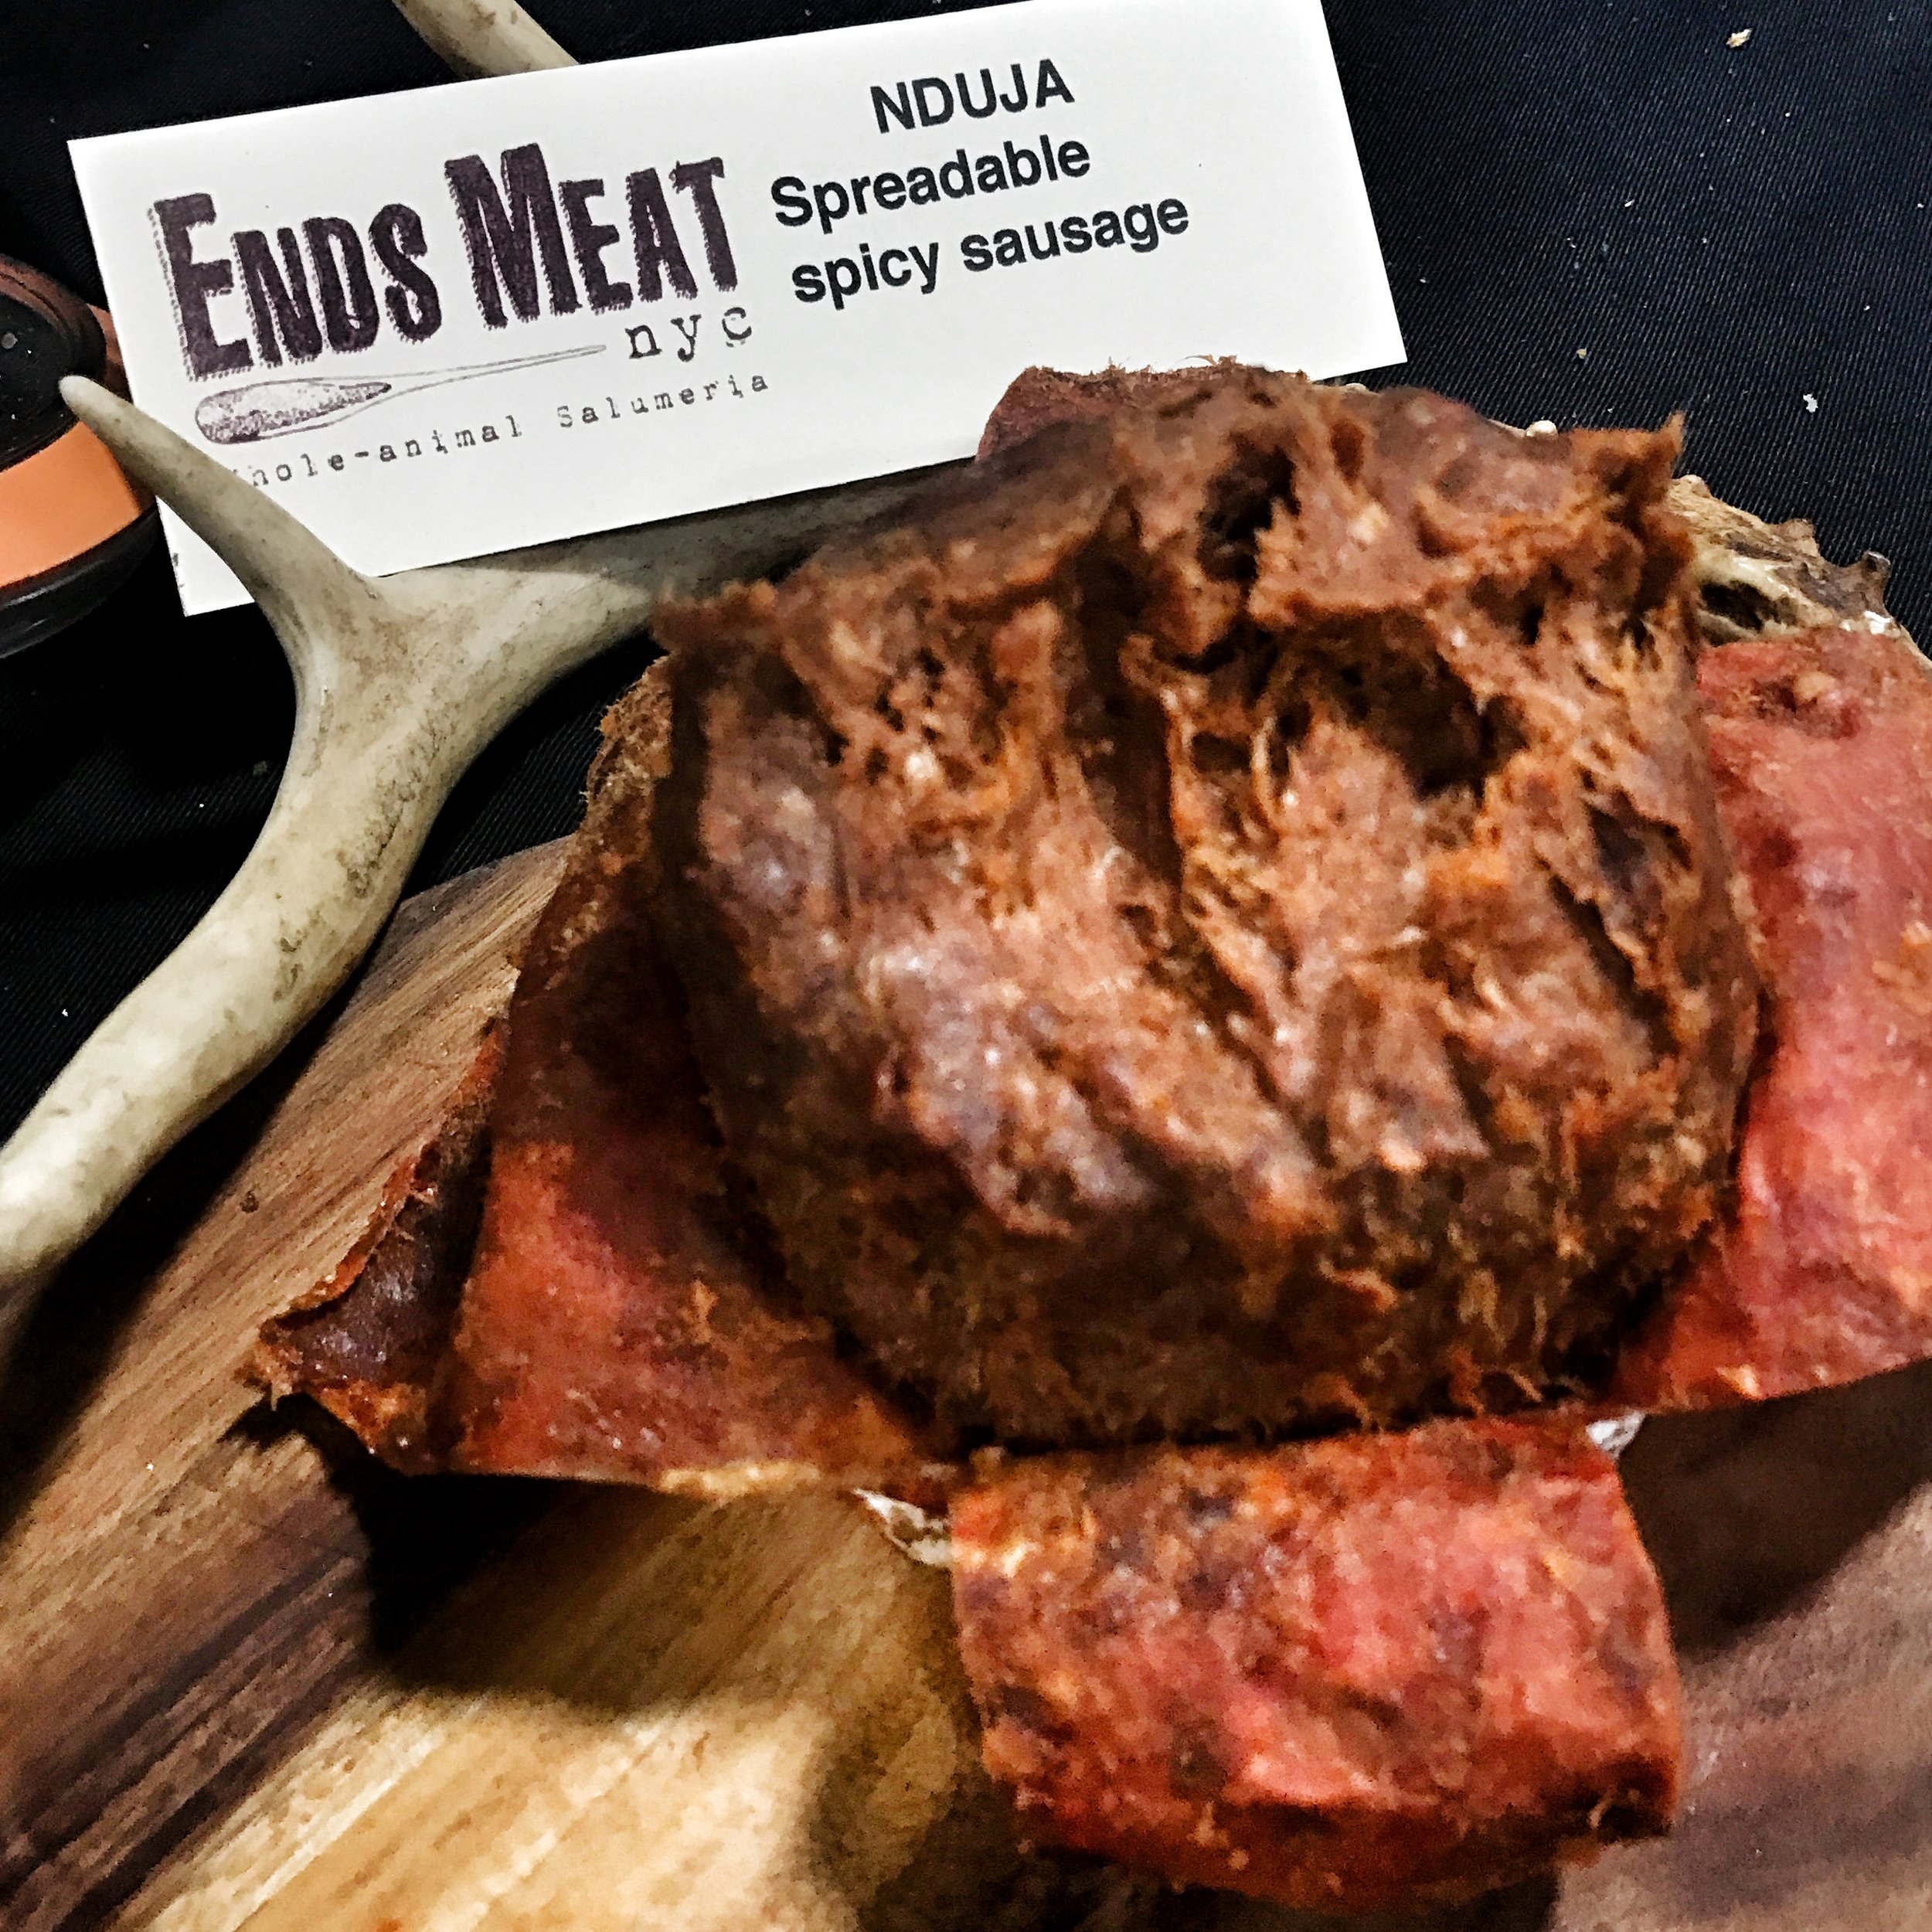 Ends Meat's Nduja - a spicy spreadable salami that will knock your socks off - its one of my personal favorites.